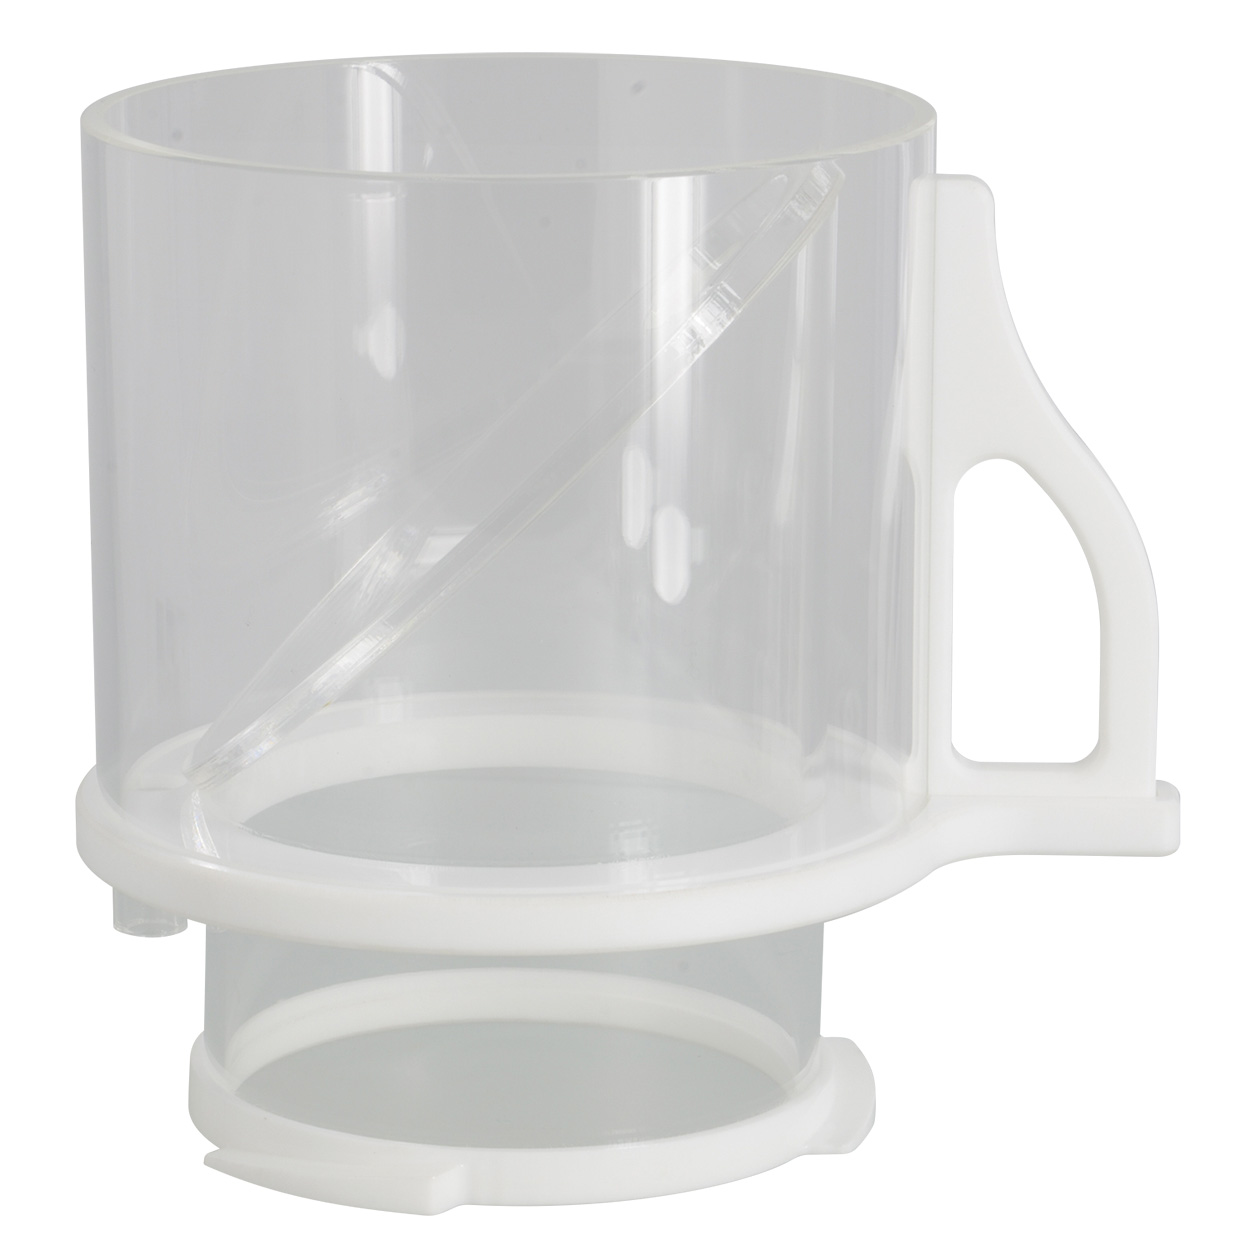 JNS Replacement Collection Cup for the CO-1/VS-2 Protein Skimmers 38308